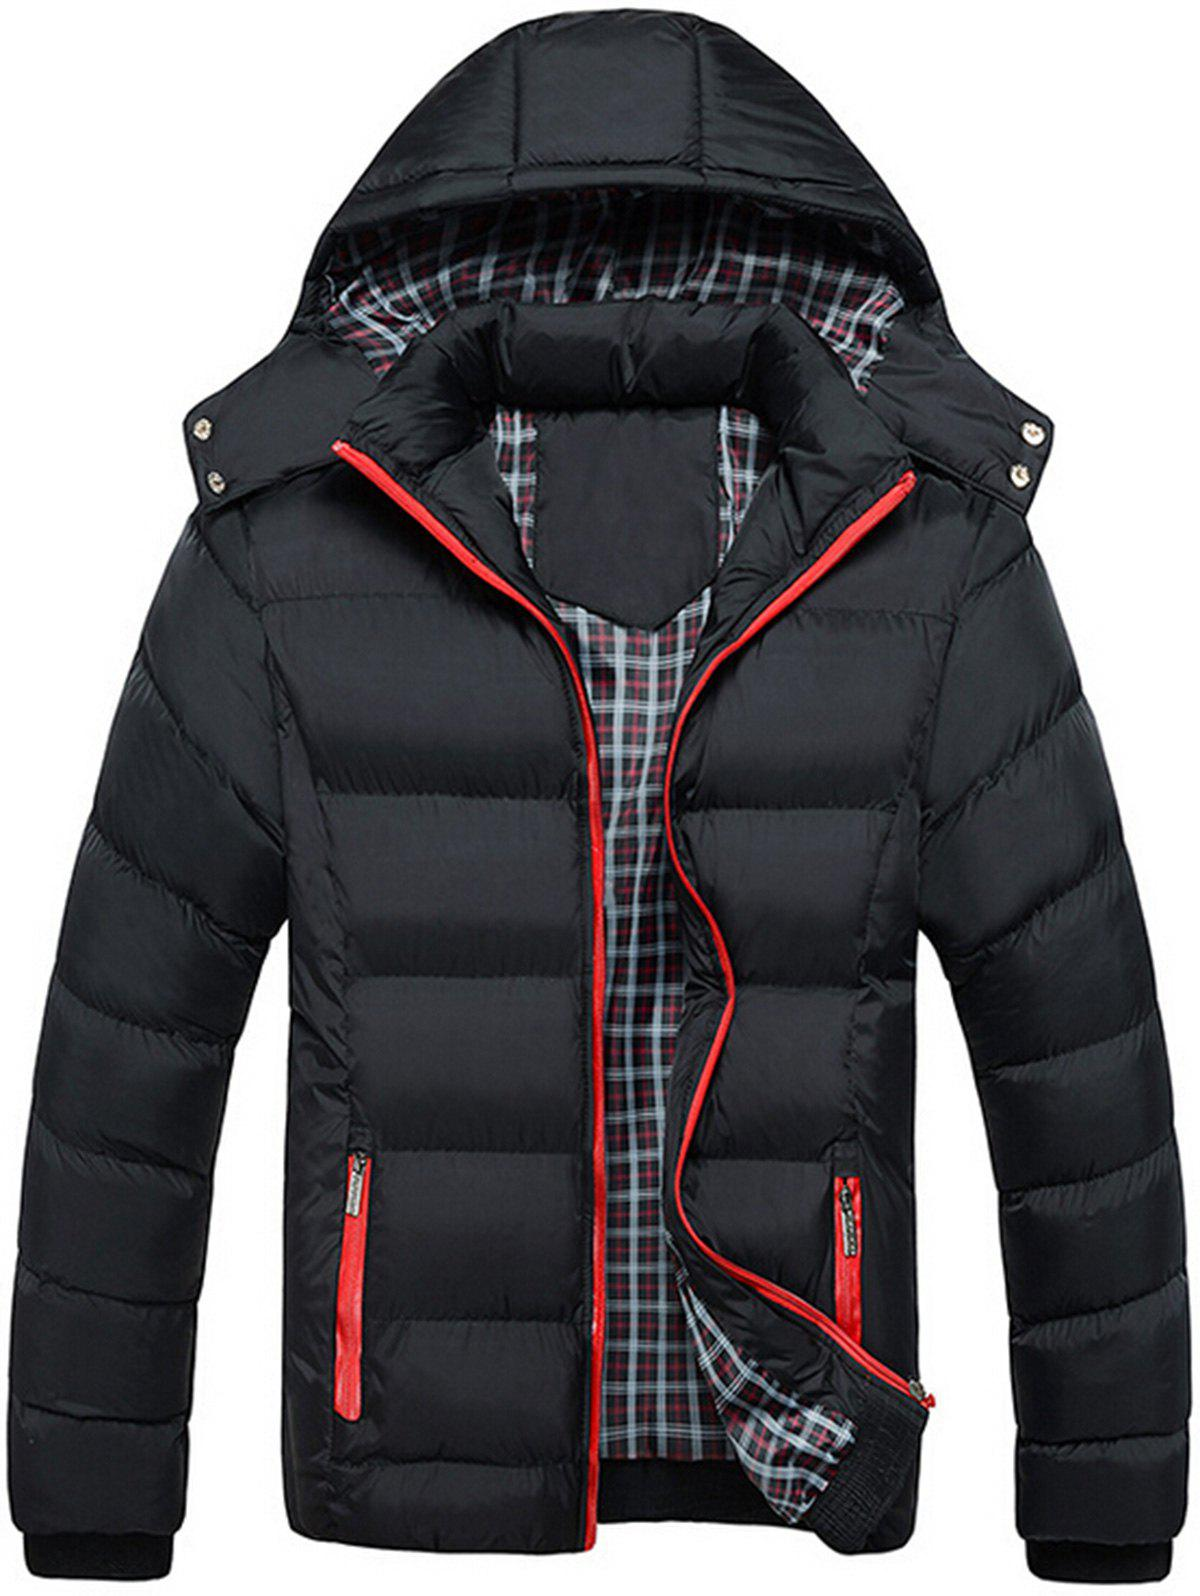 Contrast Zip Hooded Puffer JacketMEN<br><br>Size: XL; Color: BLACK; Clothes Type: Padded; Style: Casual,Fashion,Streetwear; Material: Cotton,Polyester; Collar: Hooded; Shirt Length: Regular; Sleeve Length: Long Sleeves; Season: Fall,Winter; Closure Type: Zipper; Occasion: Casual,Daily Use,Going Out; Weight: 0.8500kg; Package Contents: 1 x Jacket;